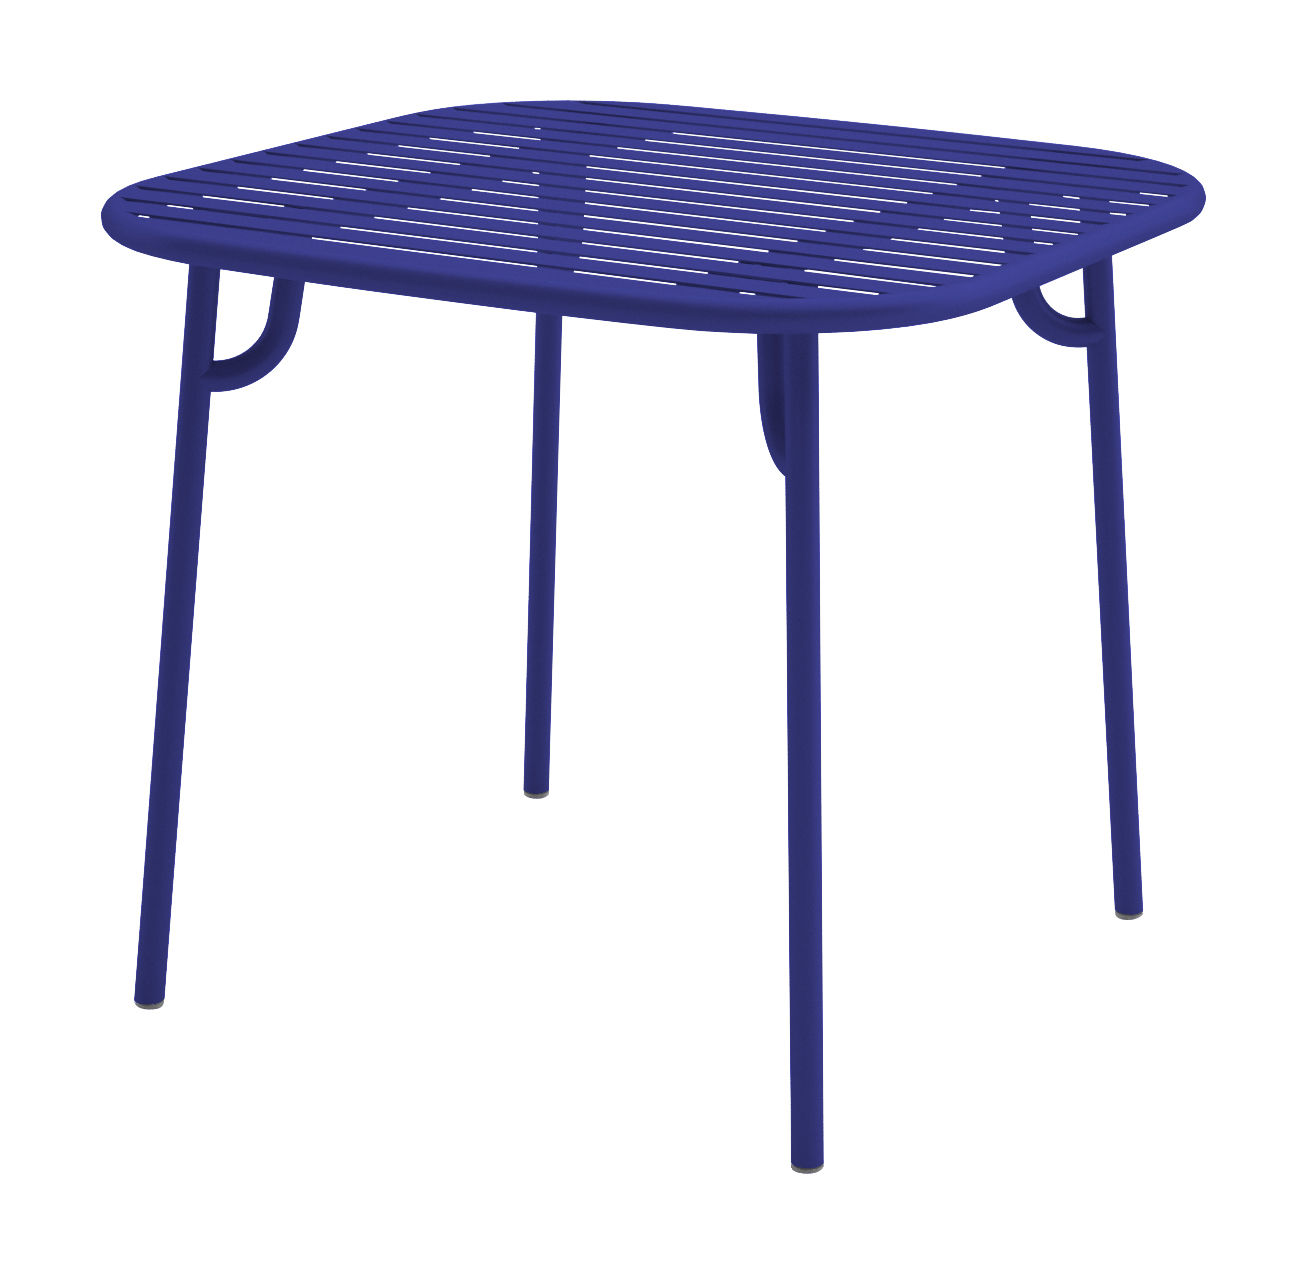 week end table 85x85 cm navy blue by oxyo. Black Bedroom Furniture Sets. Home Design Ideas